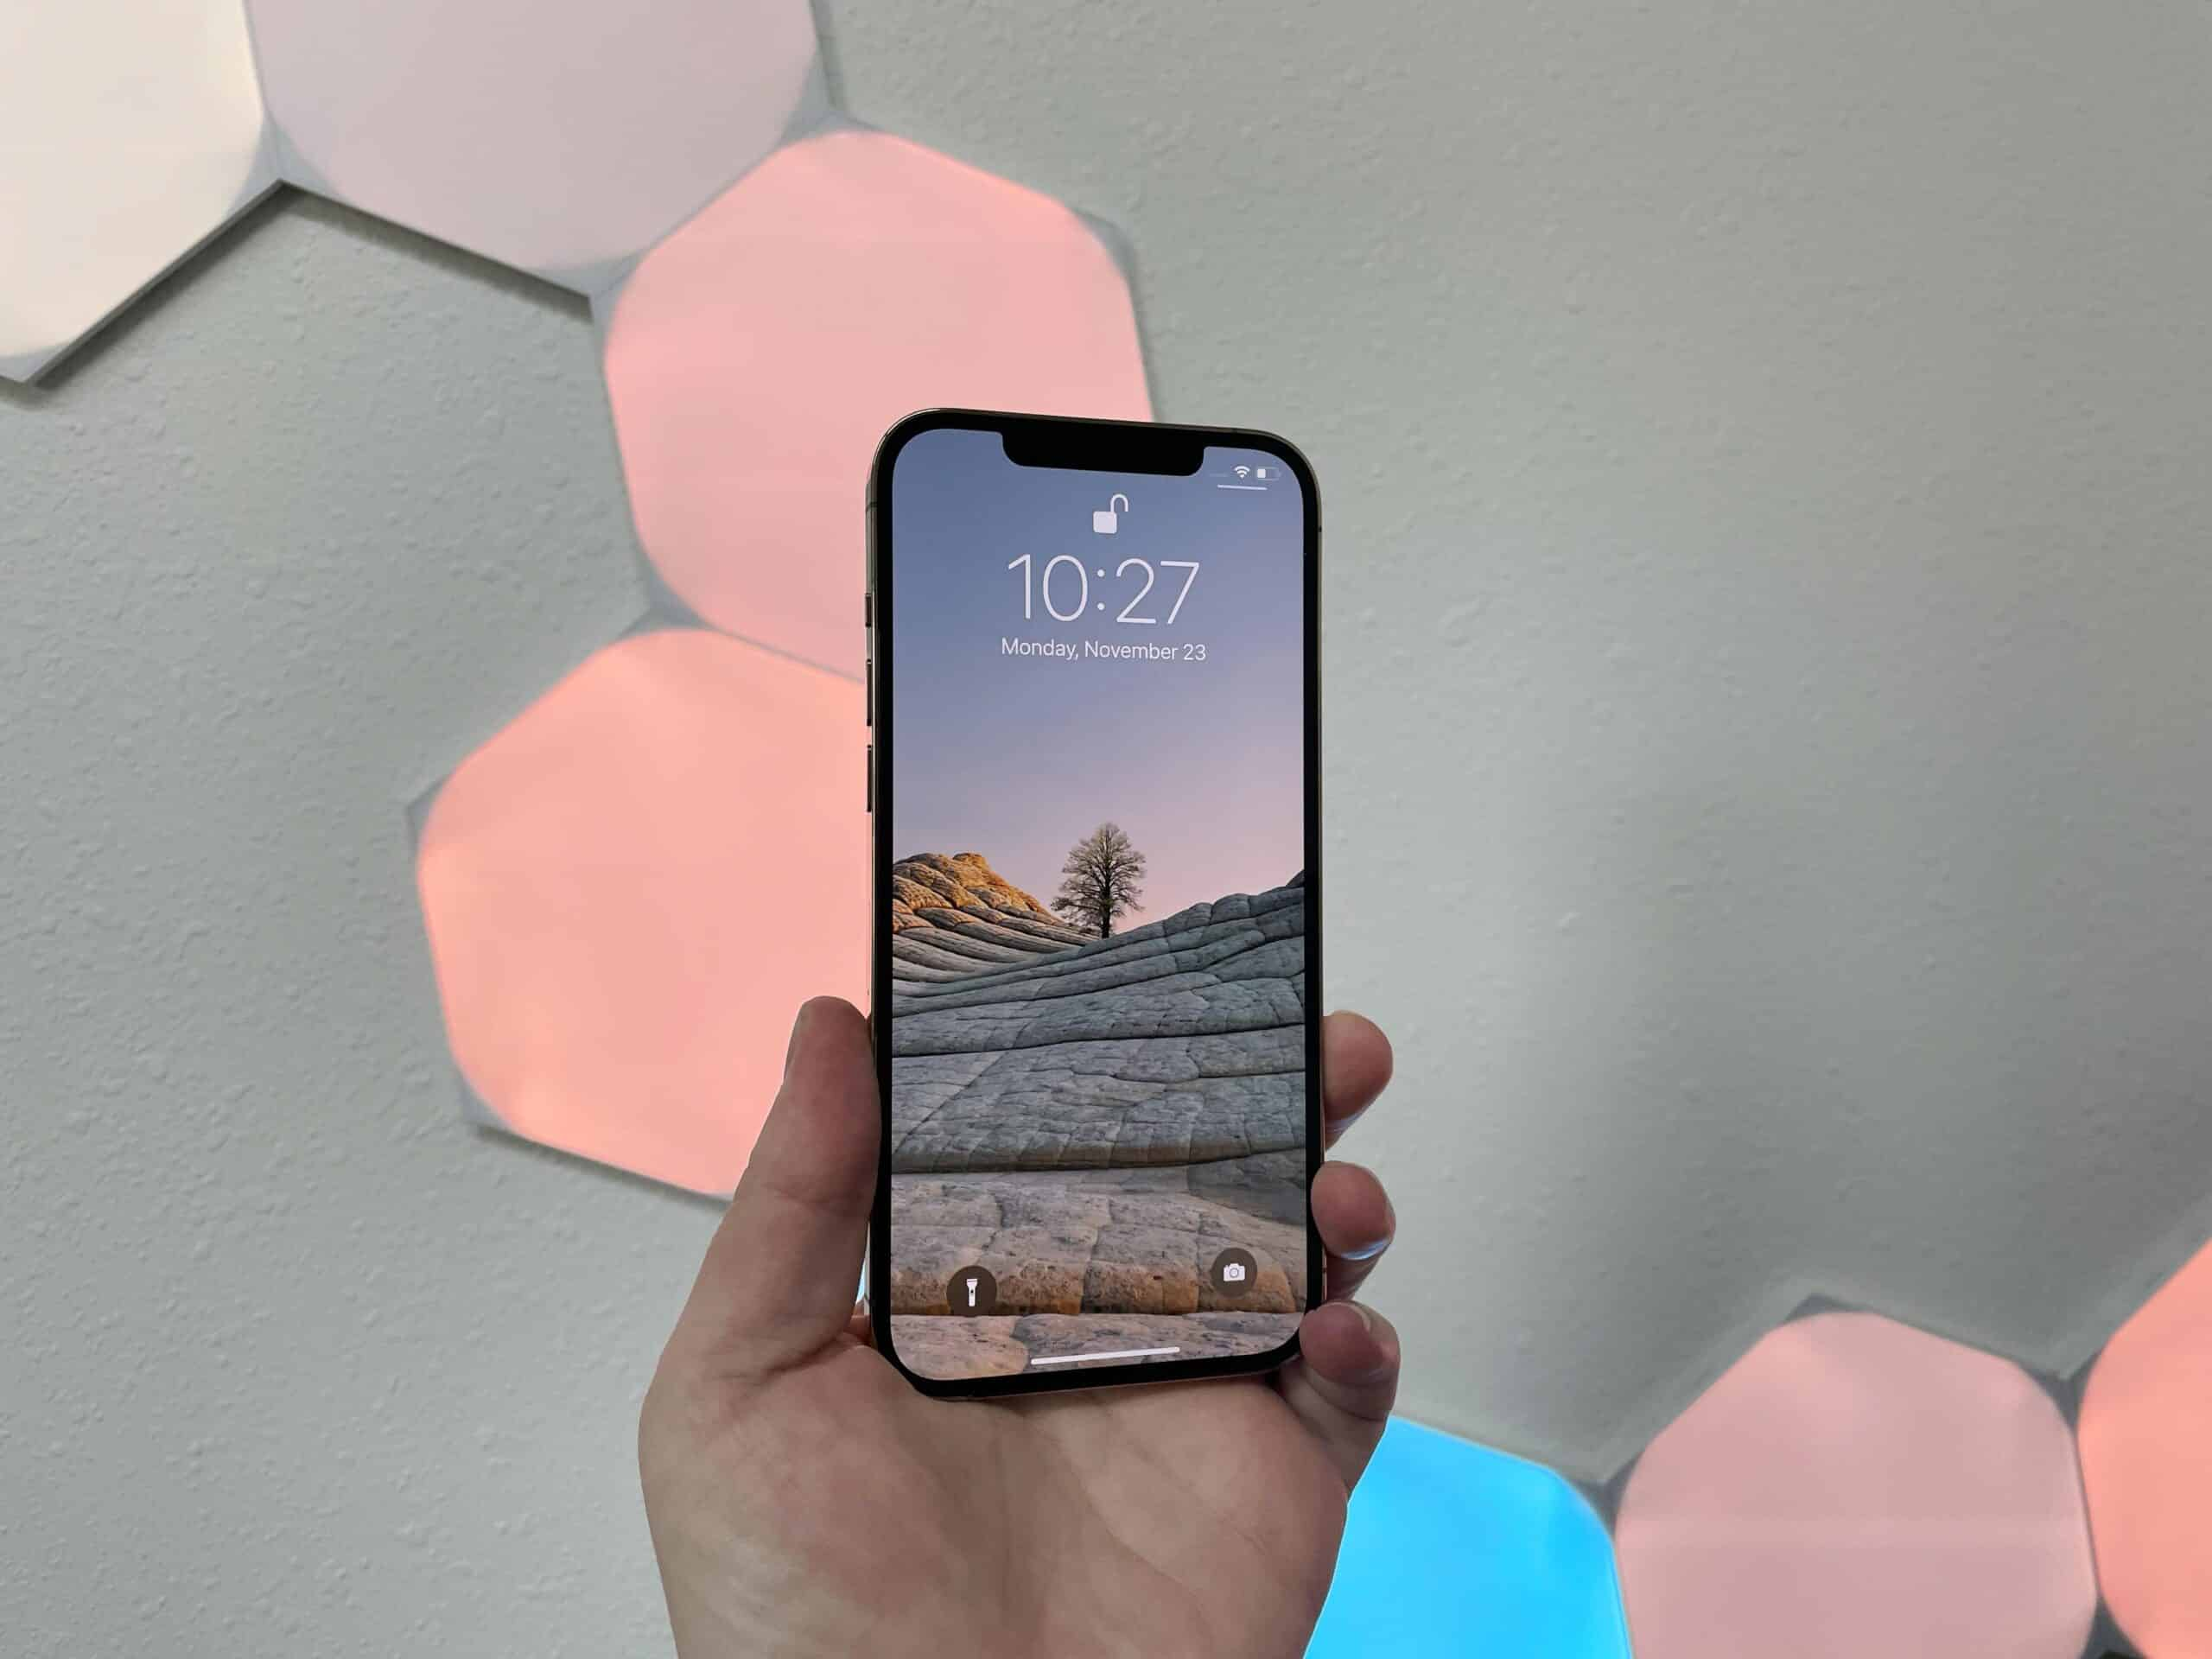 iPhone 12 Pro Max: Should you buy?